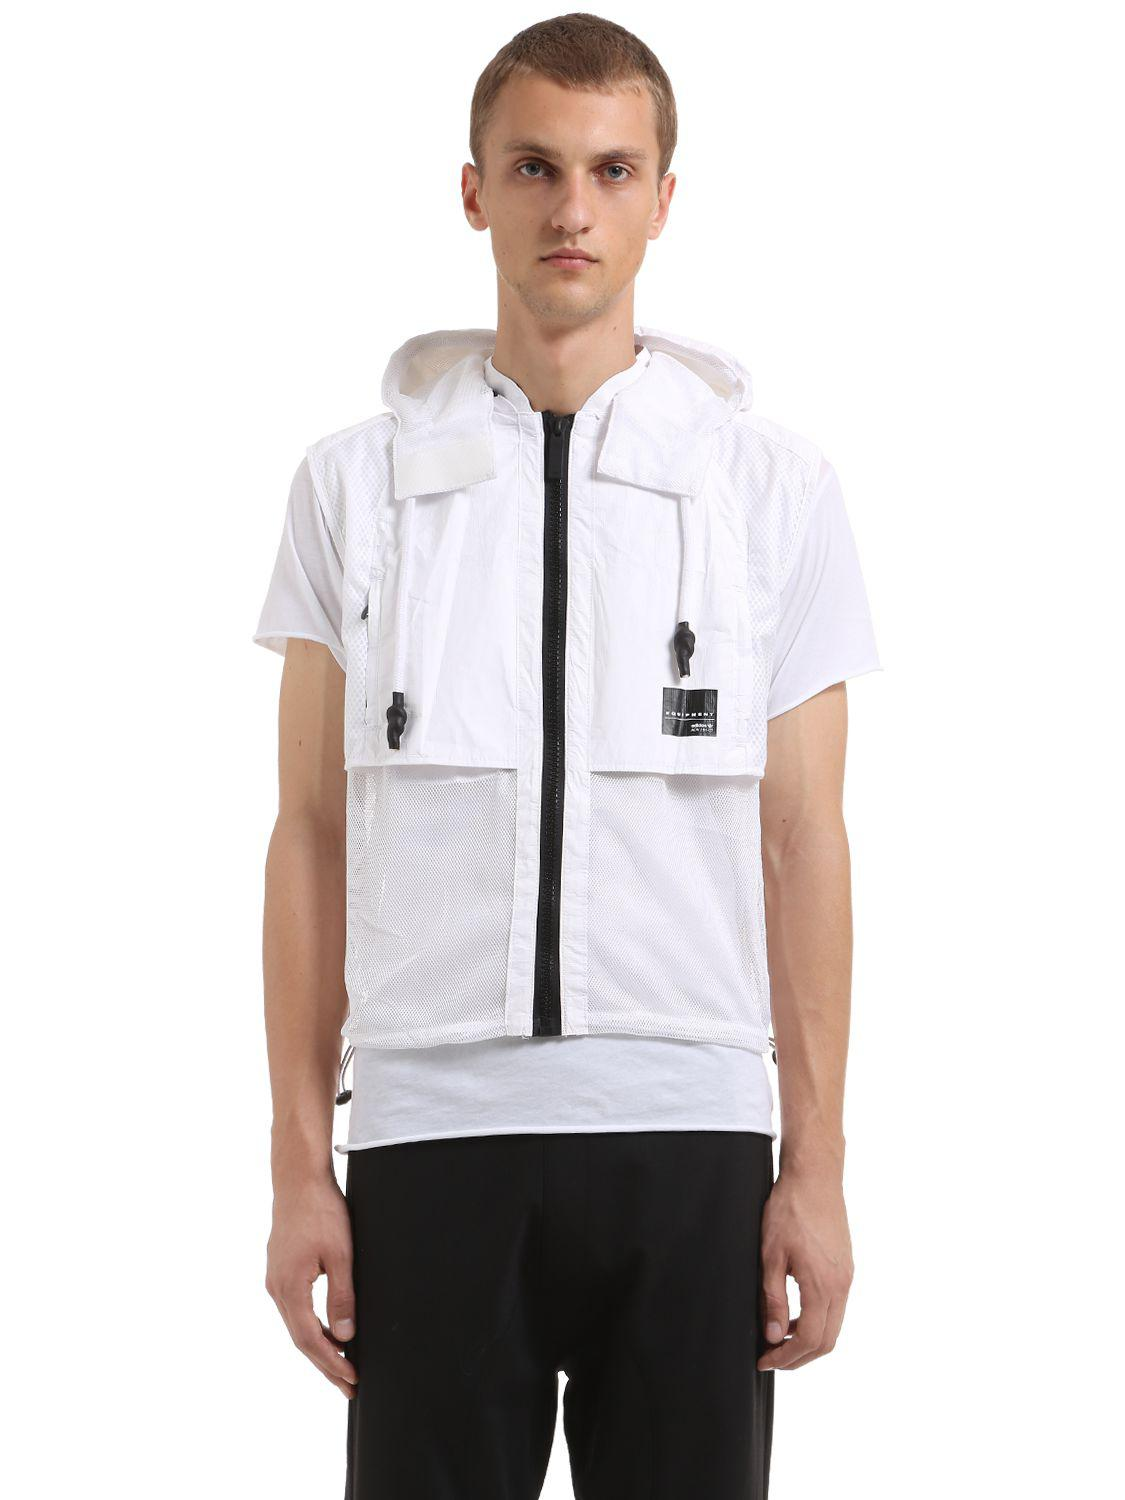 Lyst - adidas Originals Eqt Convertible Backpack in White for Men ae1145369f7a6